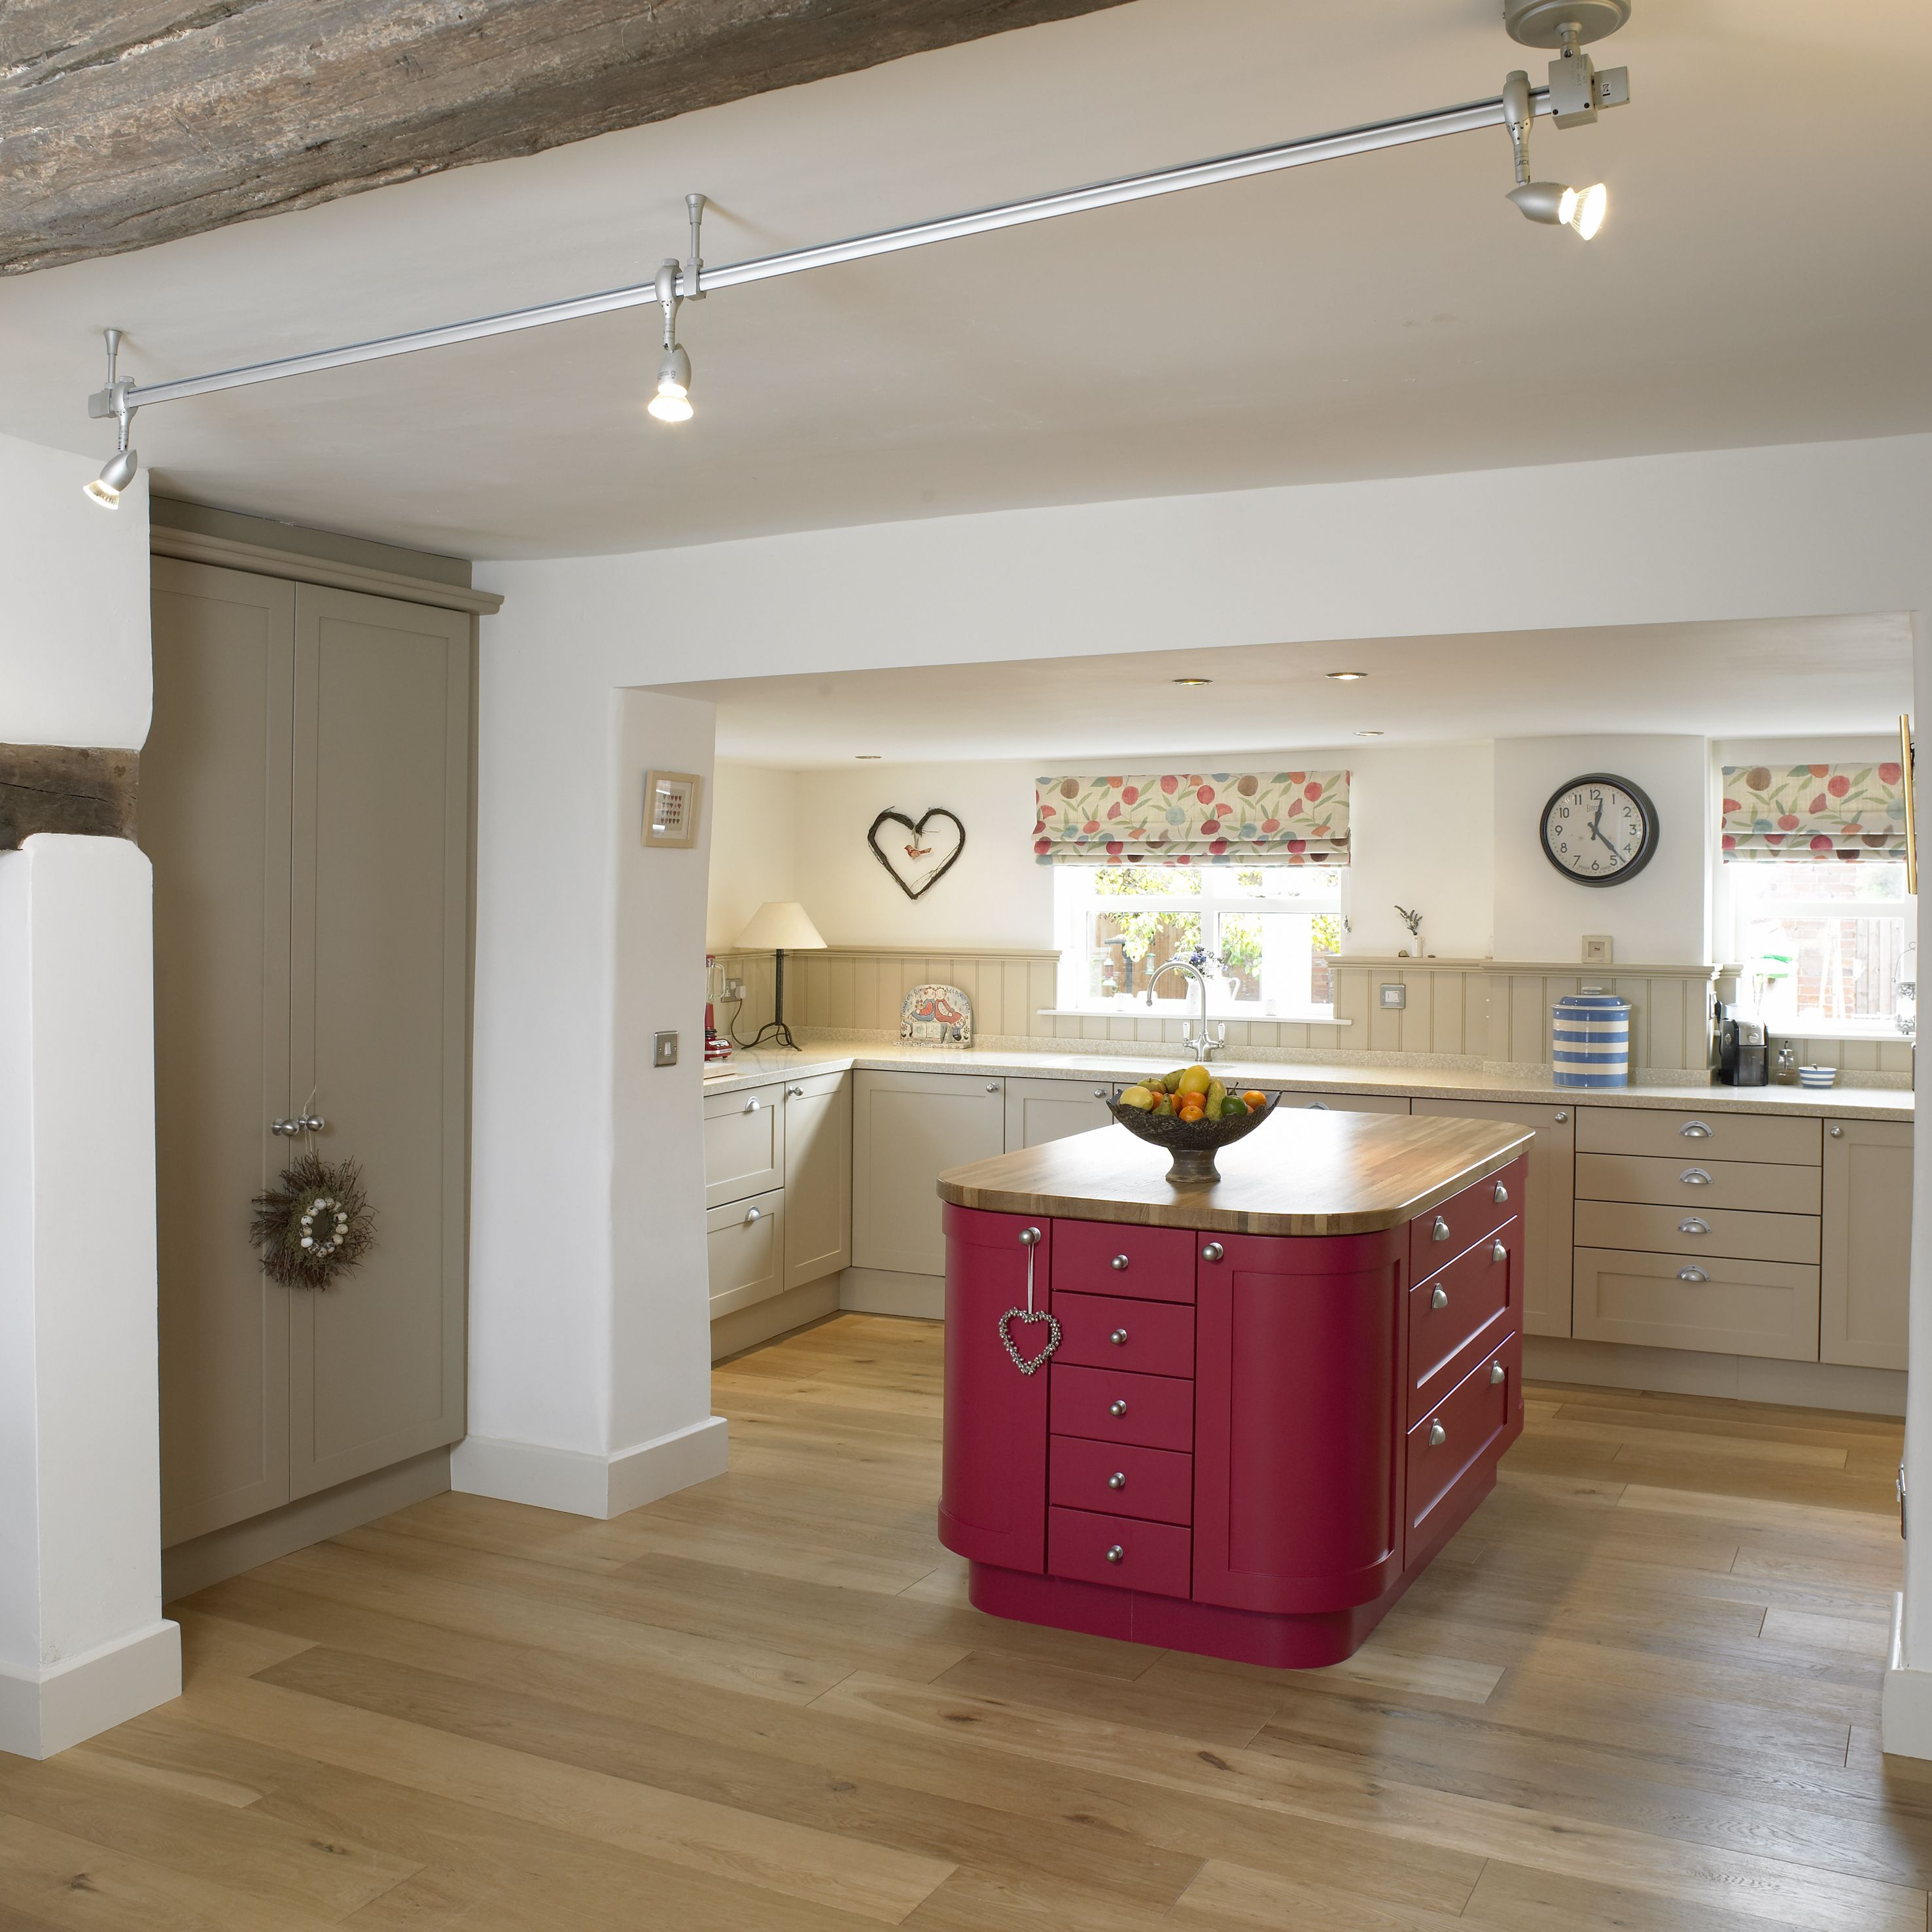 Best Painted Kitchen In Farrow Ball Oxford Stone Larder In 640 x 480